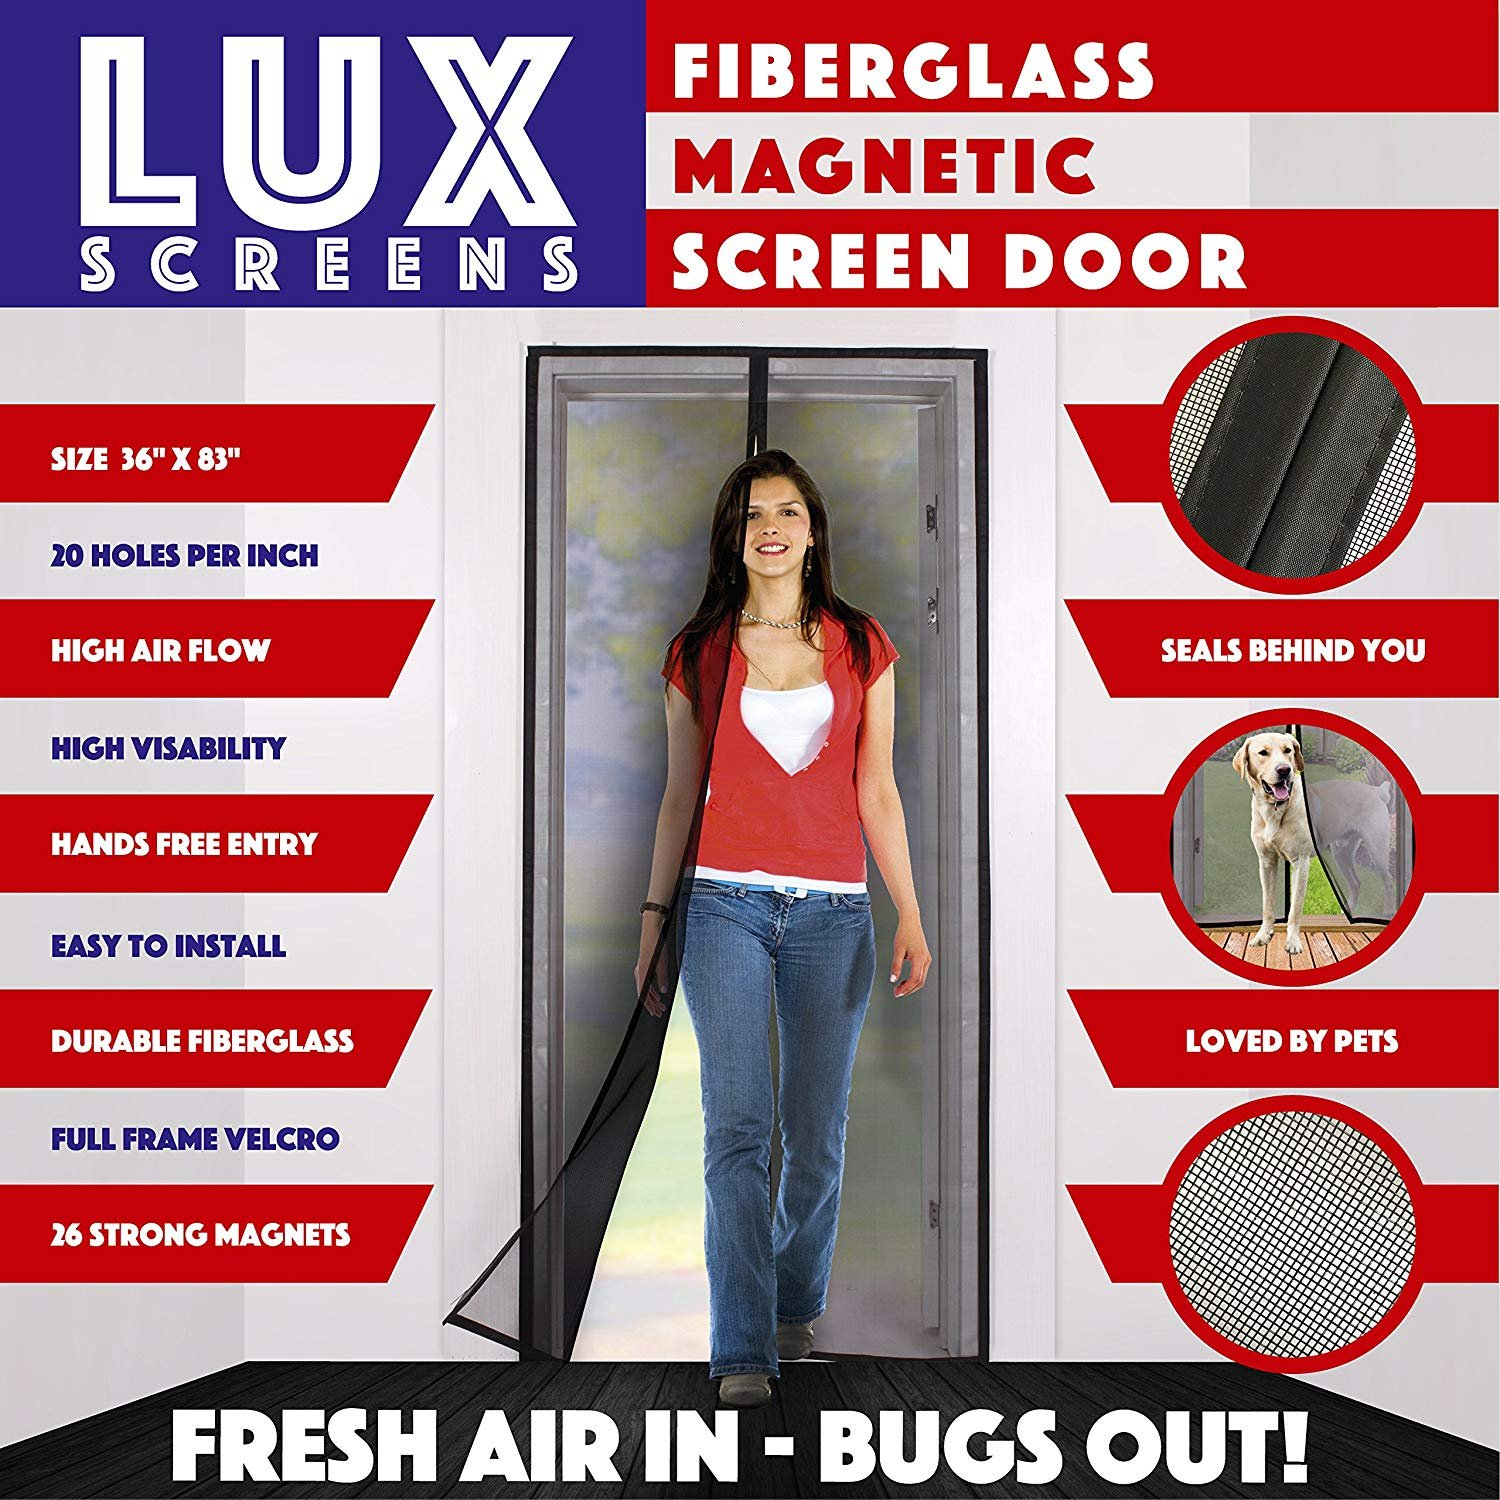 Magnetic Screen Door New 2017 Patent Pending Design Full Frame Velcro Fiberglass Mesh Not Polyester This Instant Retractable Bug Screen Opens and Closes like Magic it's the Last Screen You'll Need